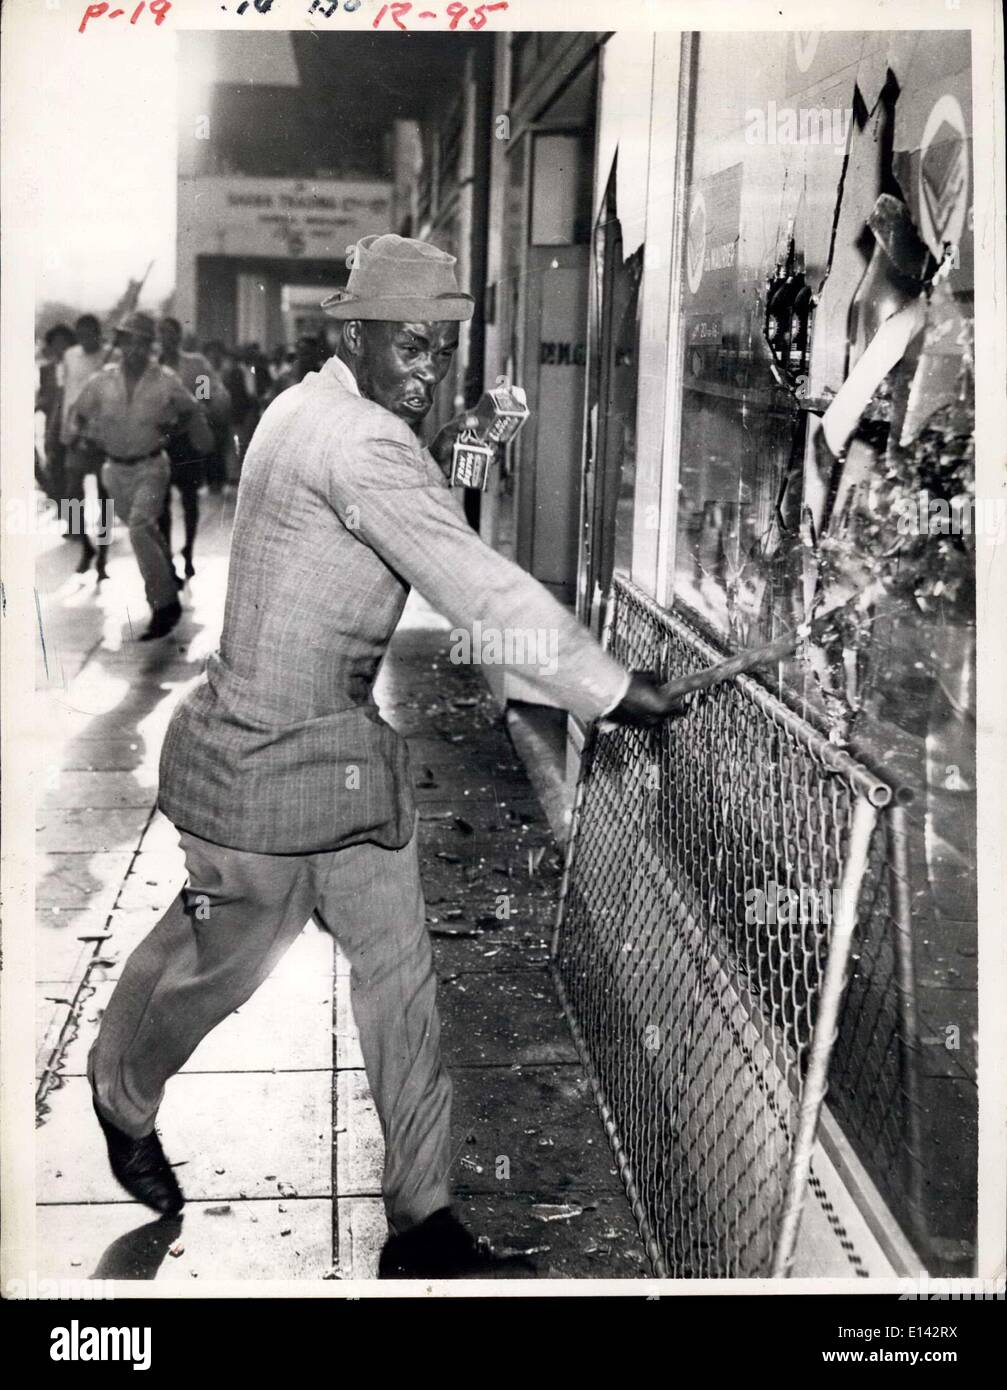 Apr. 04, 2012 - Durban Riots. Hate and brutal desire to destroy are expressed in the face and action of this well-dressed native who was caught by a cameraman as he smashed the plate glass window of an Indian shop on Friday. In his hand are two tins of meat looted from another wrecked grocery store. - Stock Image